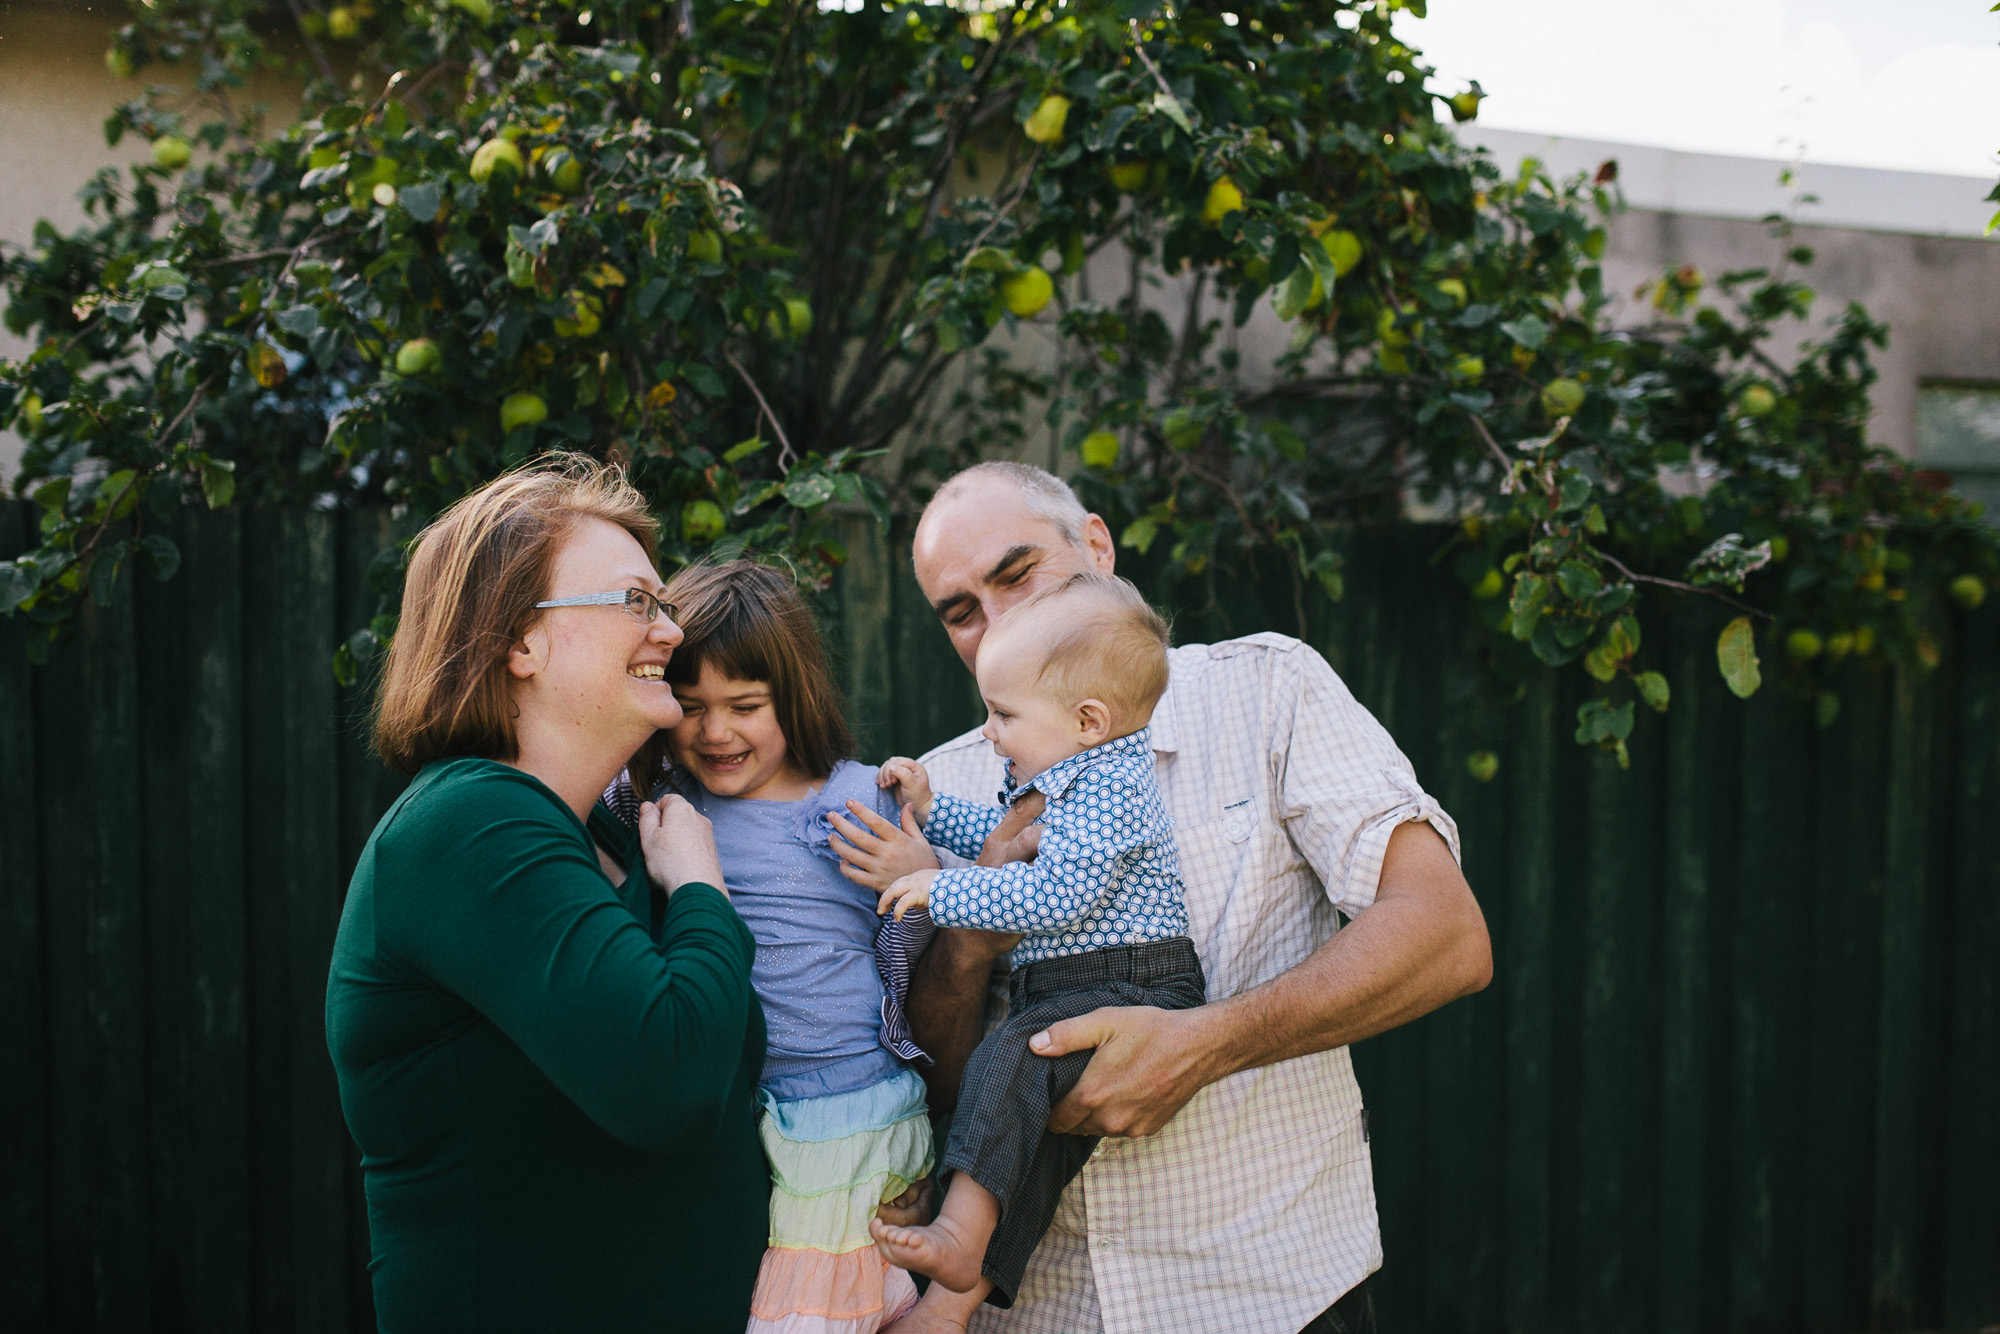 The-Parkers-Quirky-Fun-Family-Photos-03